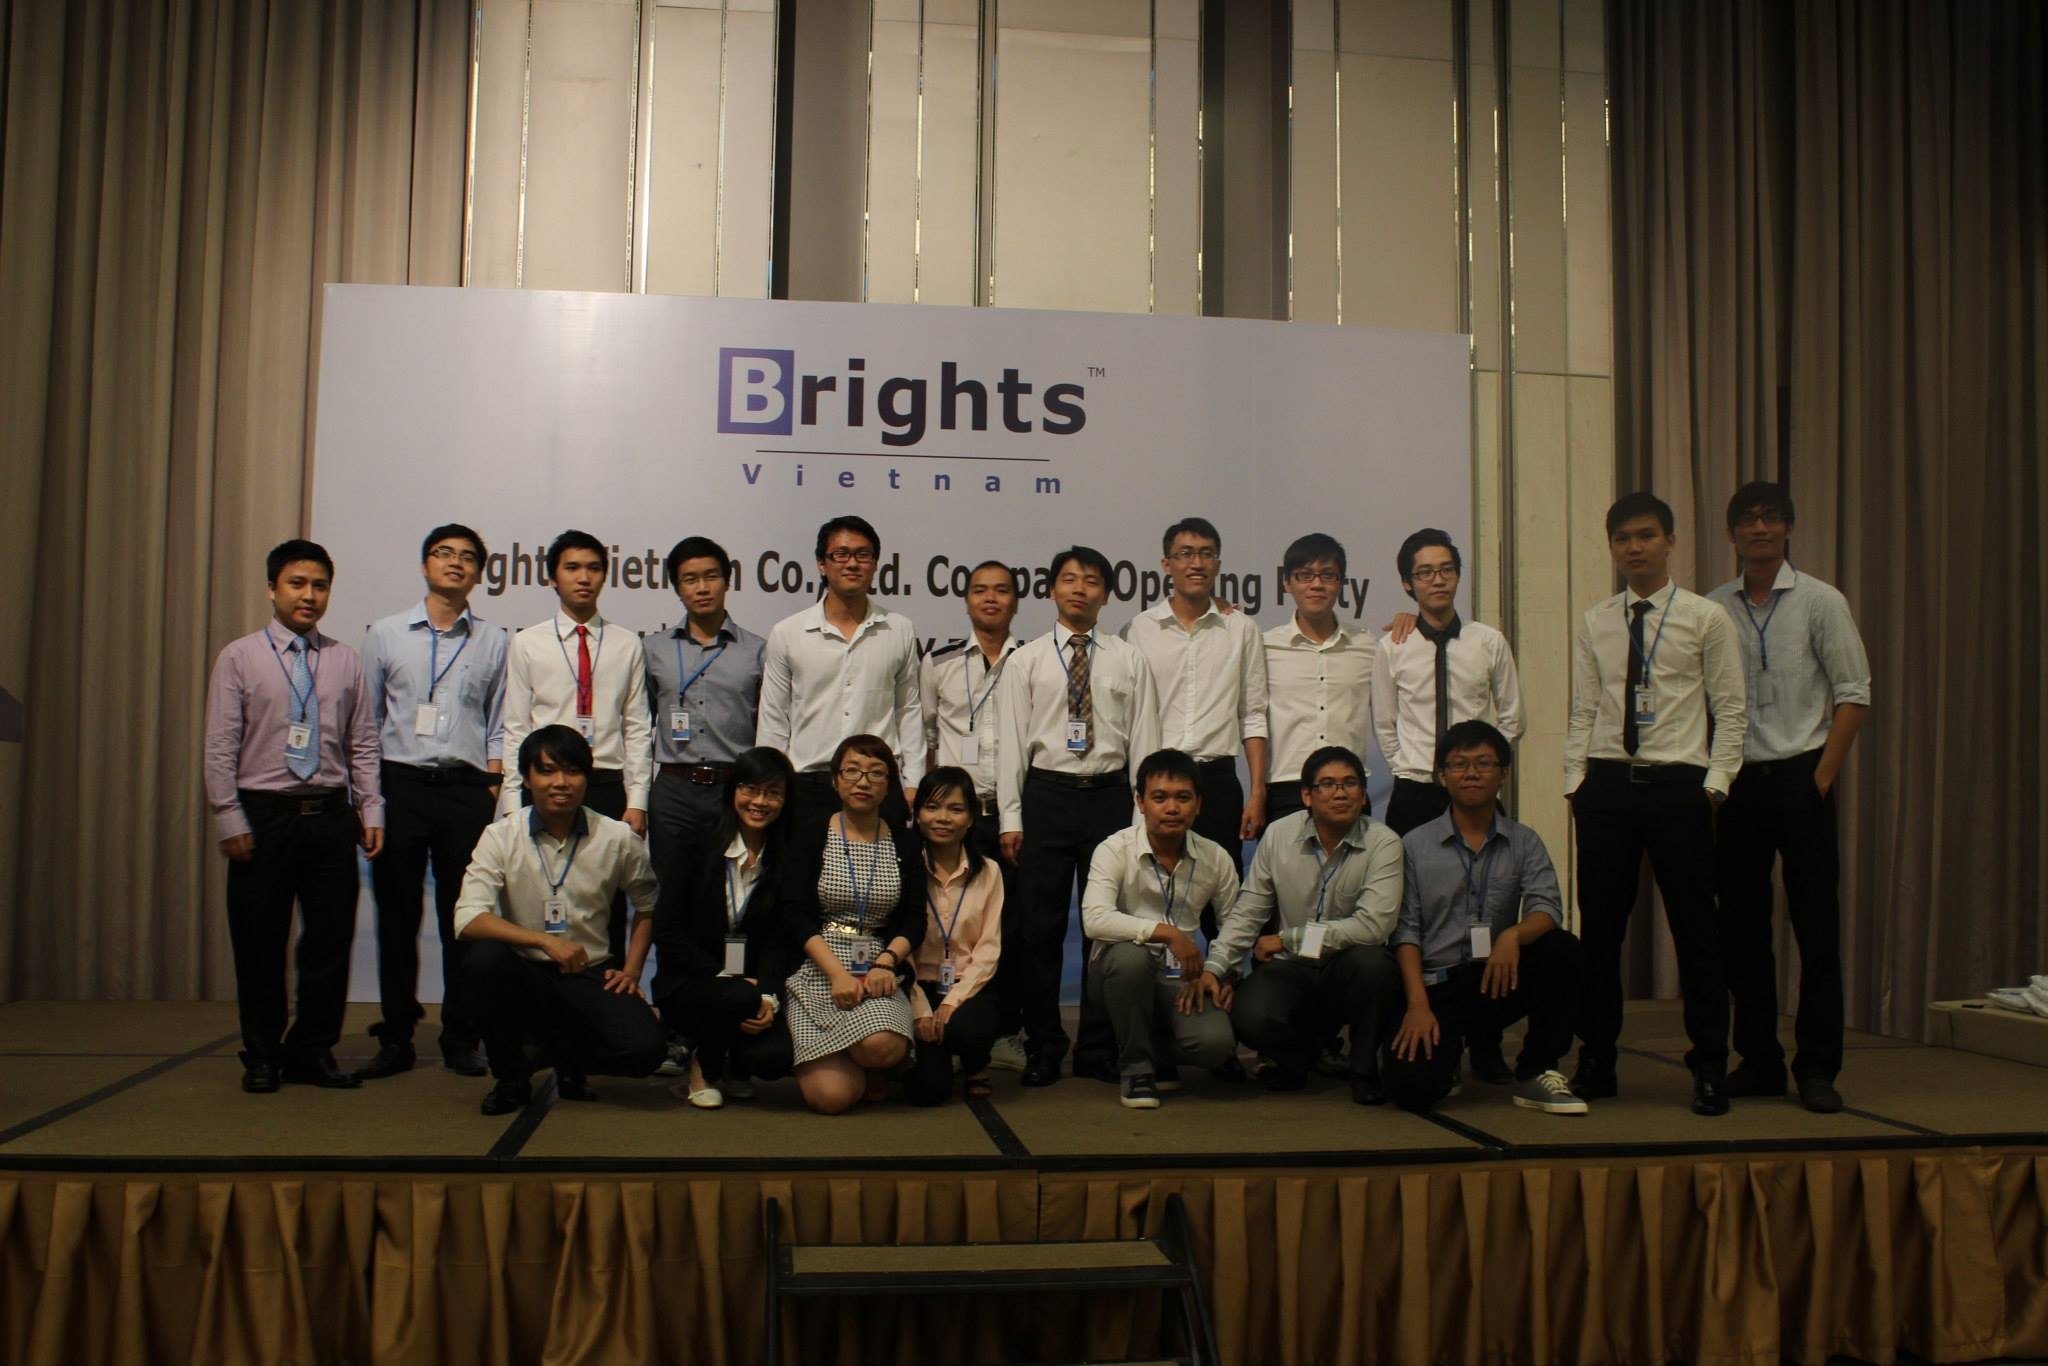 Brights Vietnam Co.,Ltd